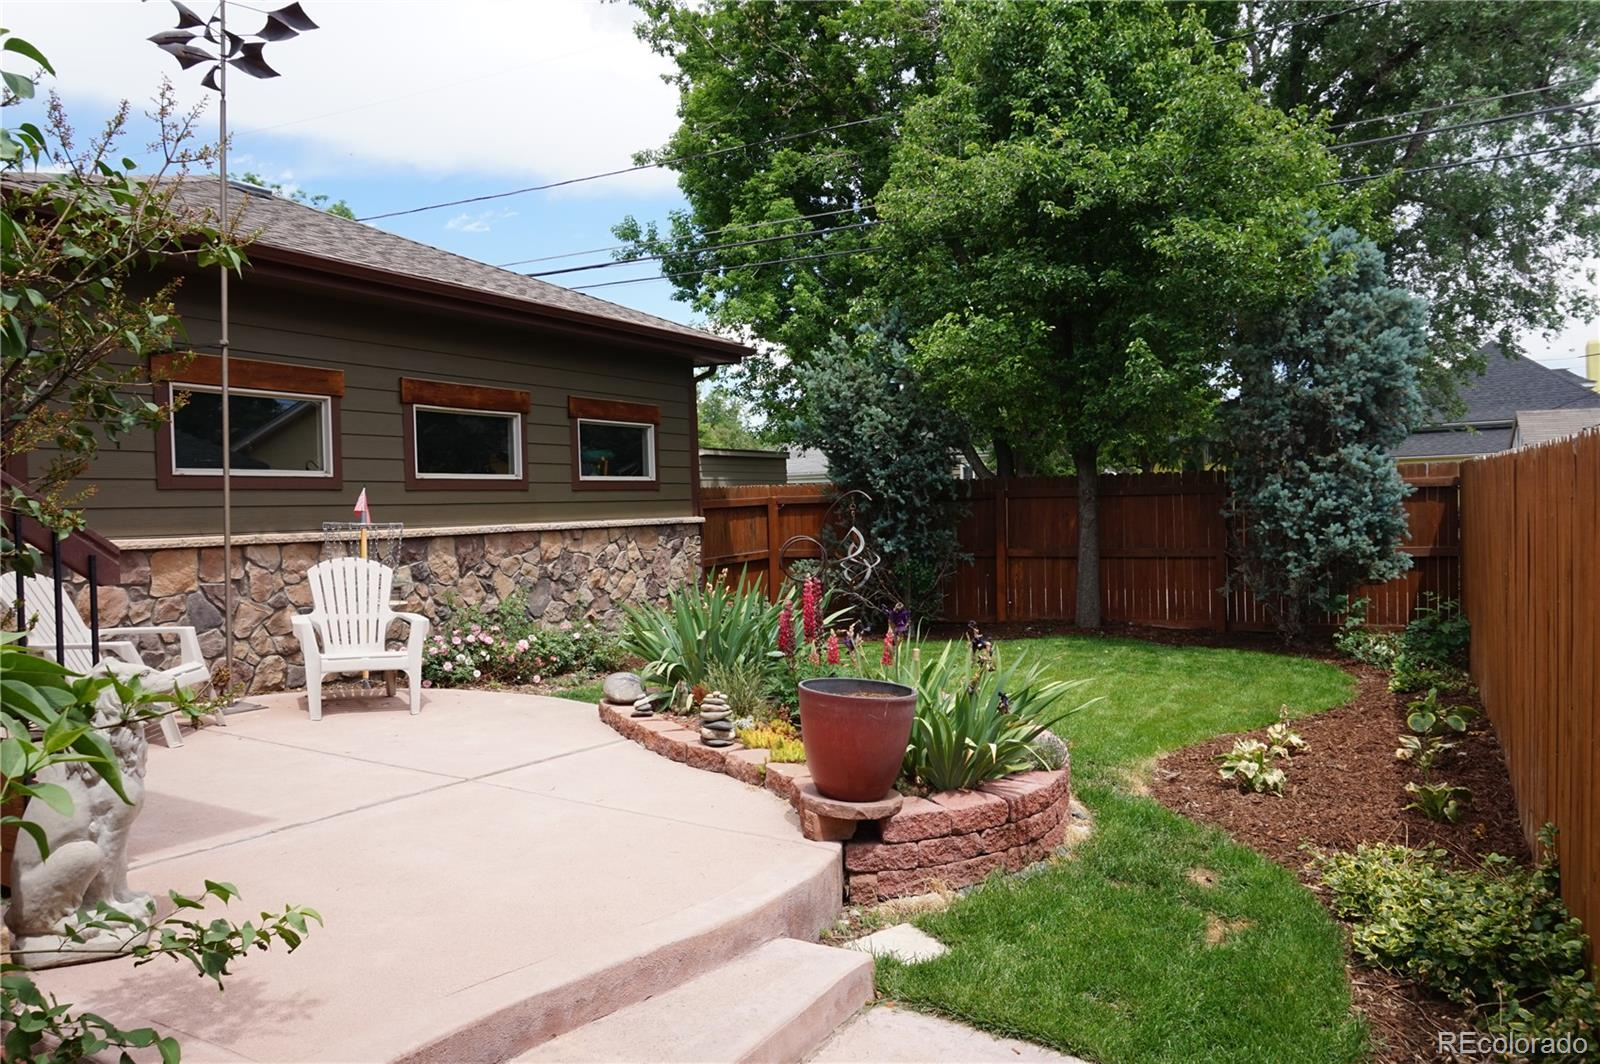 MLS# 8433922 - 31 - 3290 S Corona Street, Englewood, CO 80113